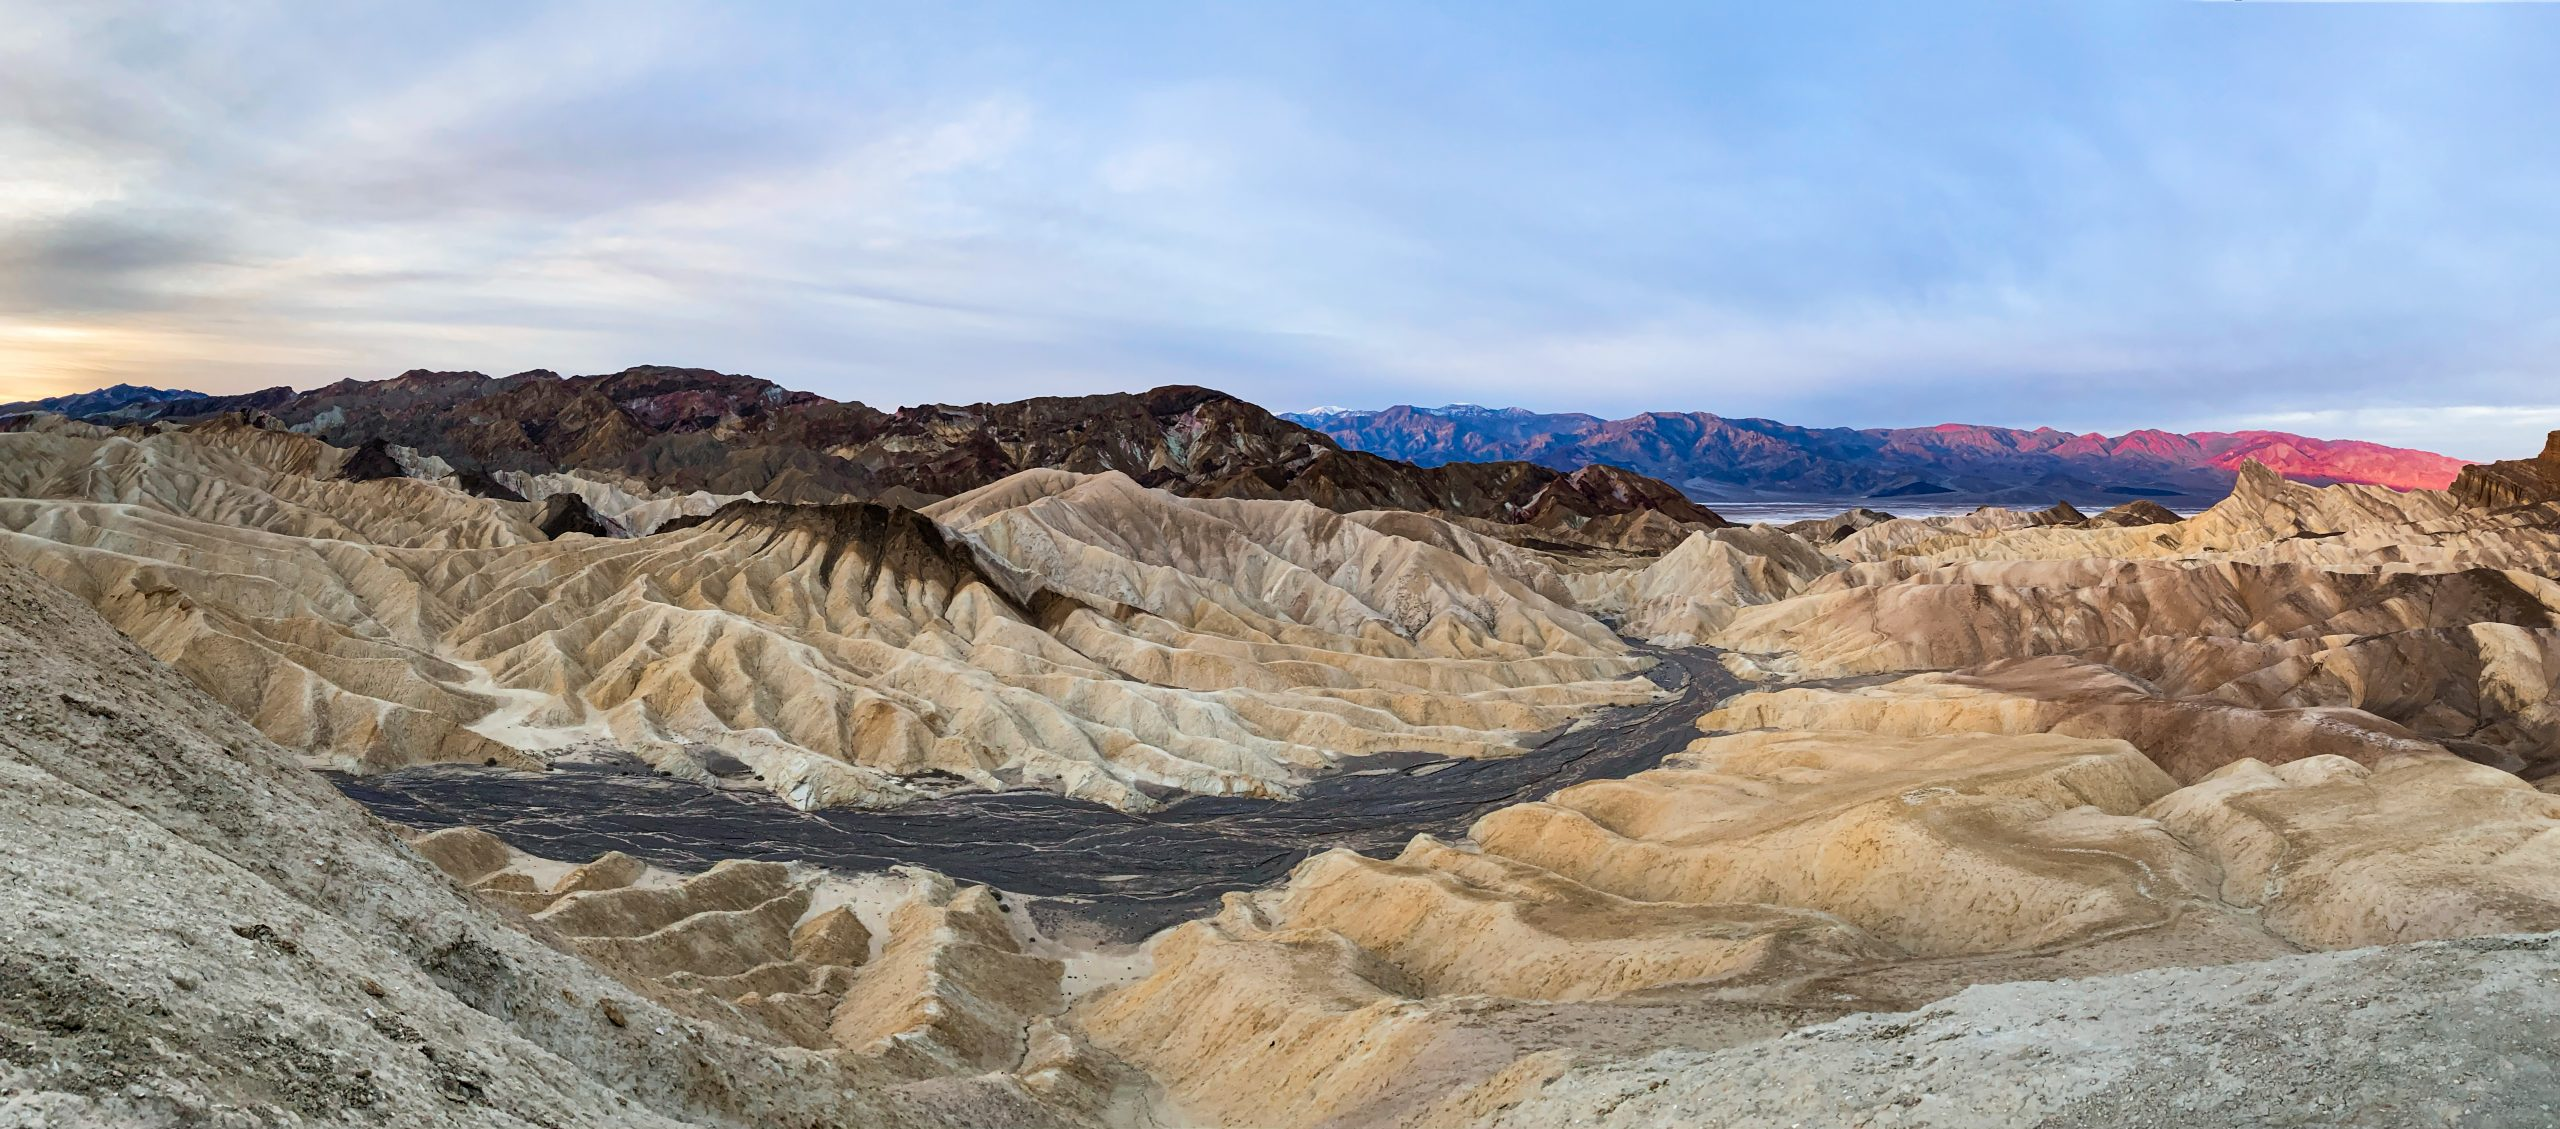 Zabriskie Point at sunrise - Death Valley National Park